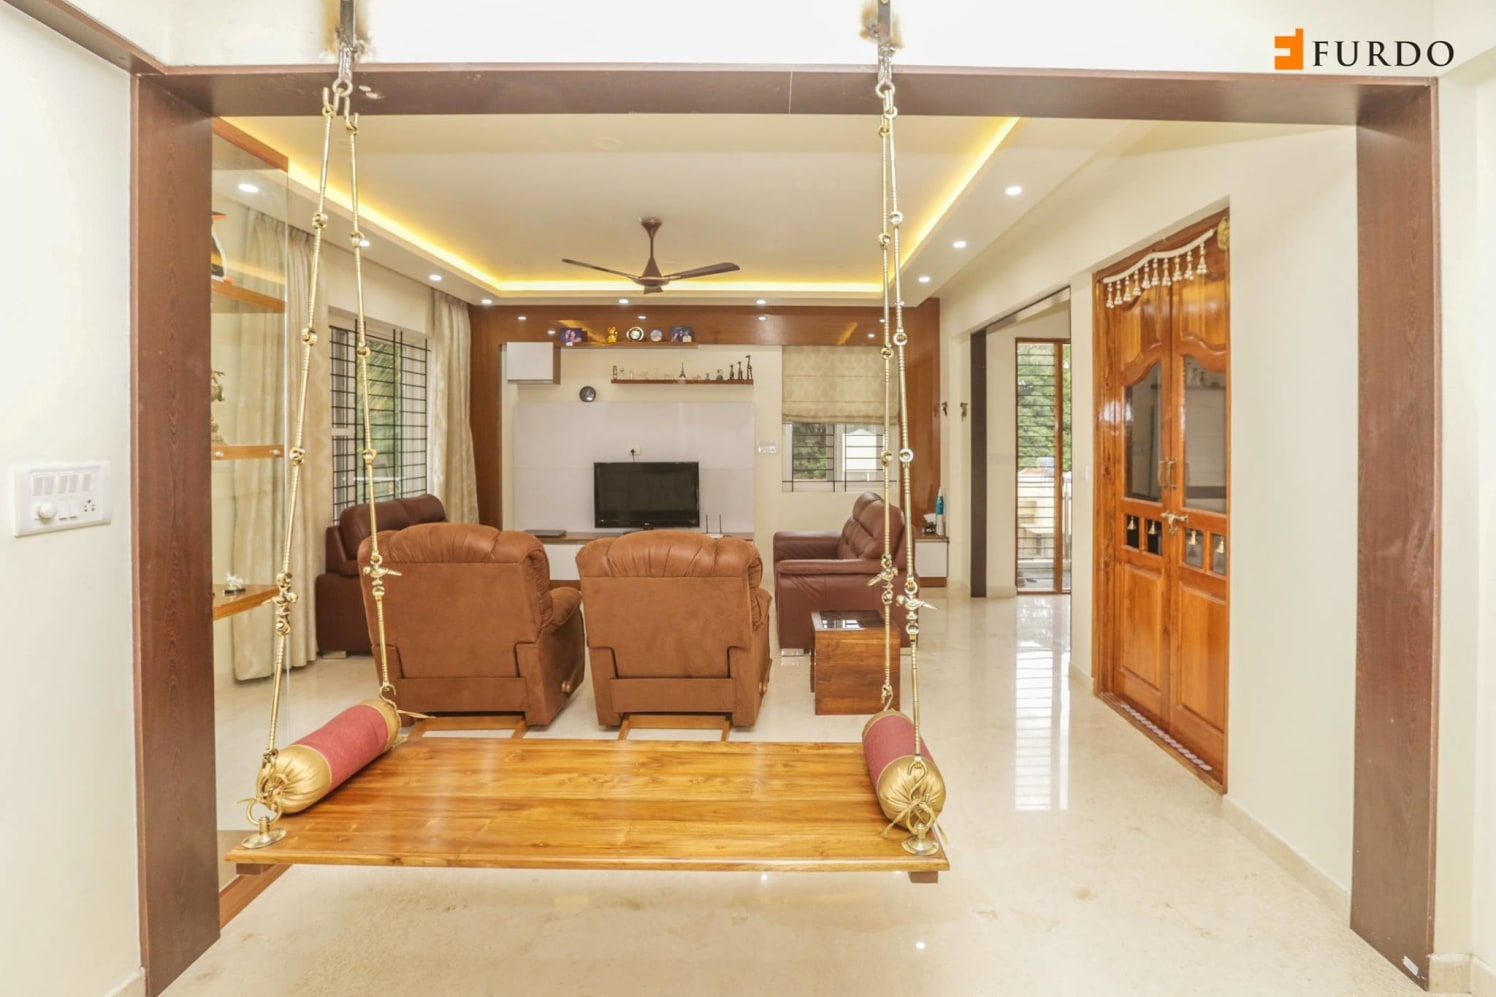 Living Room With Wooden Swing by Furdo.com Living-room Traditional   Interior Design Photos & Ideas